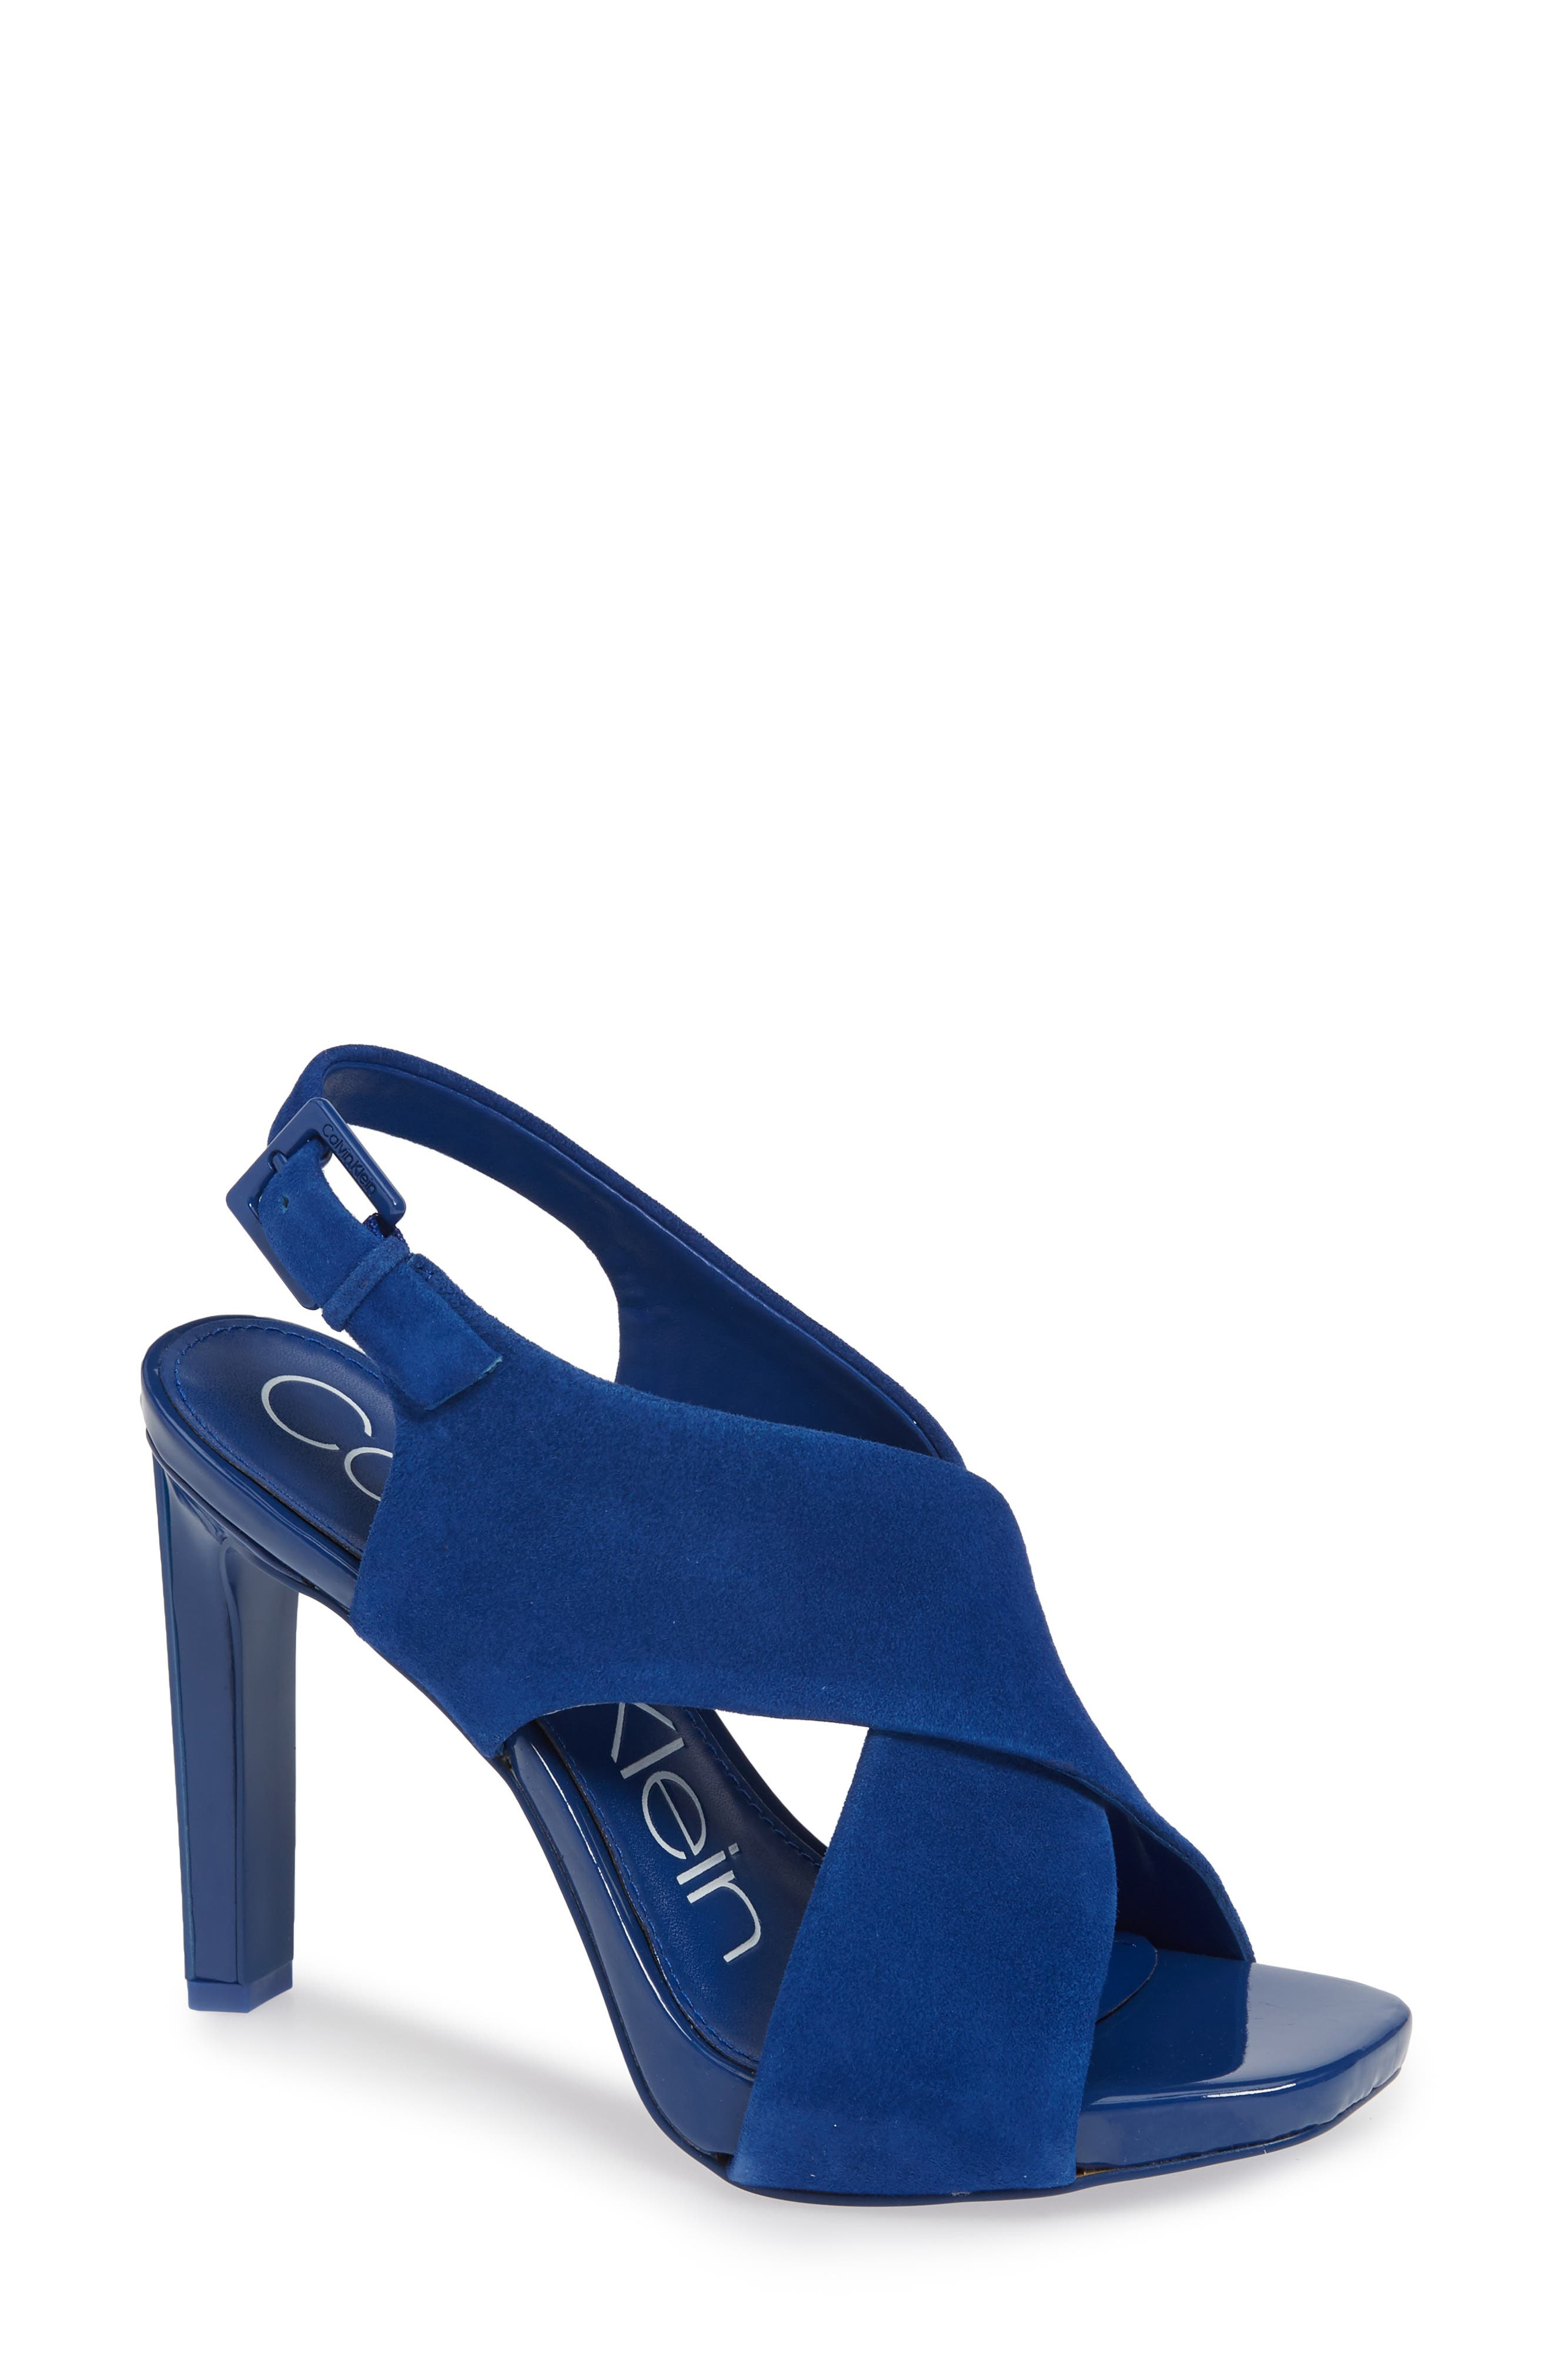 CALVIN KLEIN Myra Cross Strap Sandal, Main, color, ROYAL BLUE SUEDE